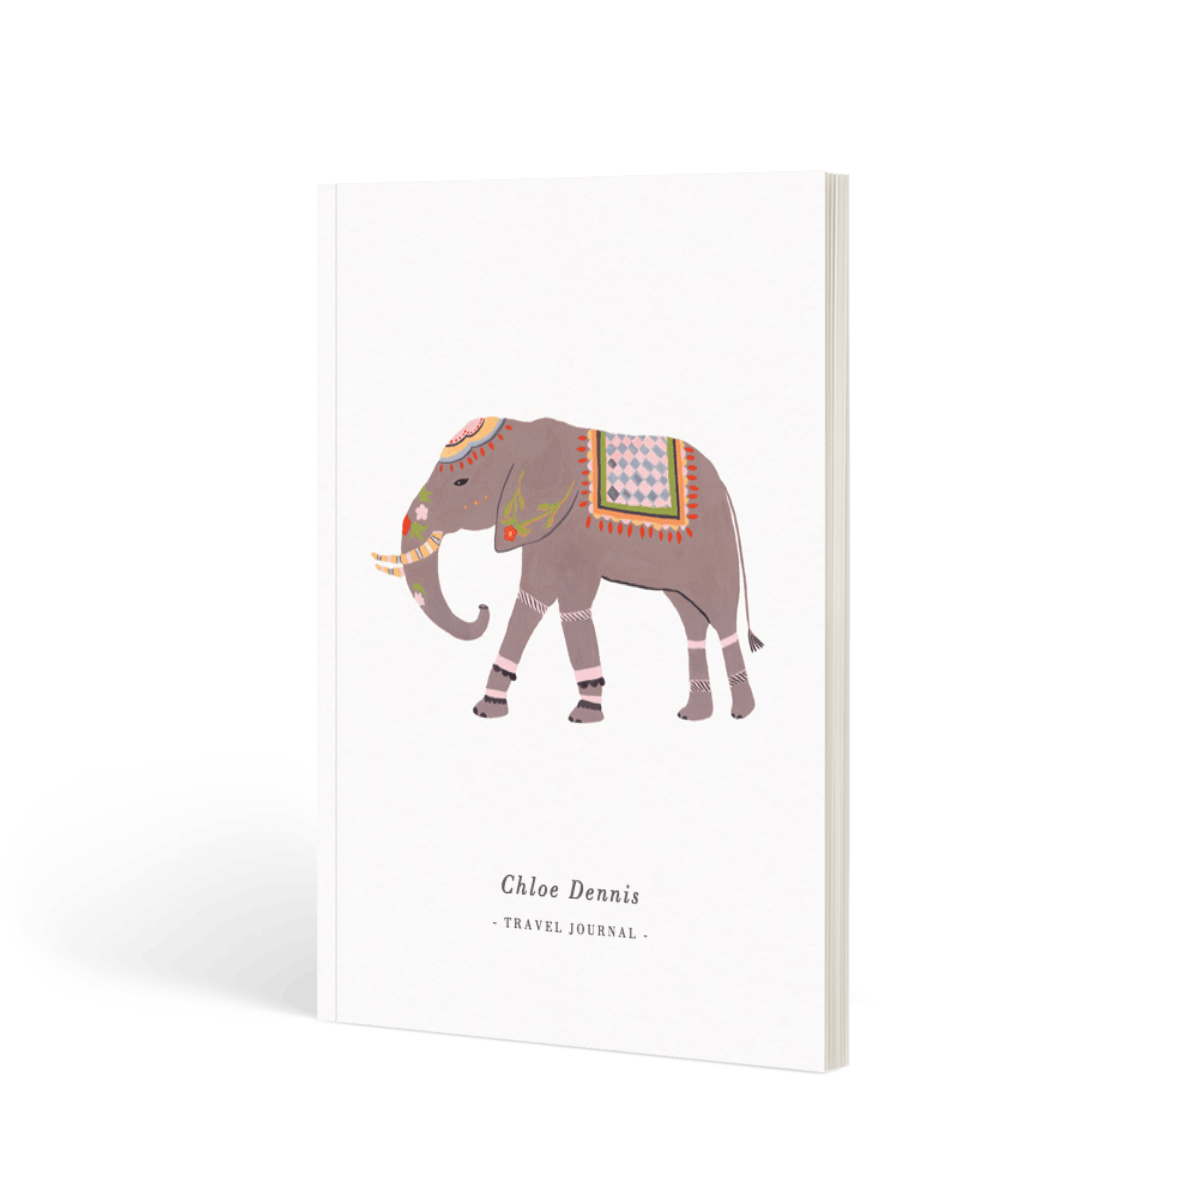 Https%3a%2f%2fwww.papier.com%2fproduct image%2f53840%2f6%2feastern elephant 12966 front 1542114648.png?ixlib=rb 1.1